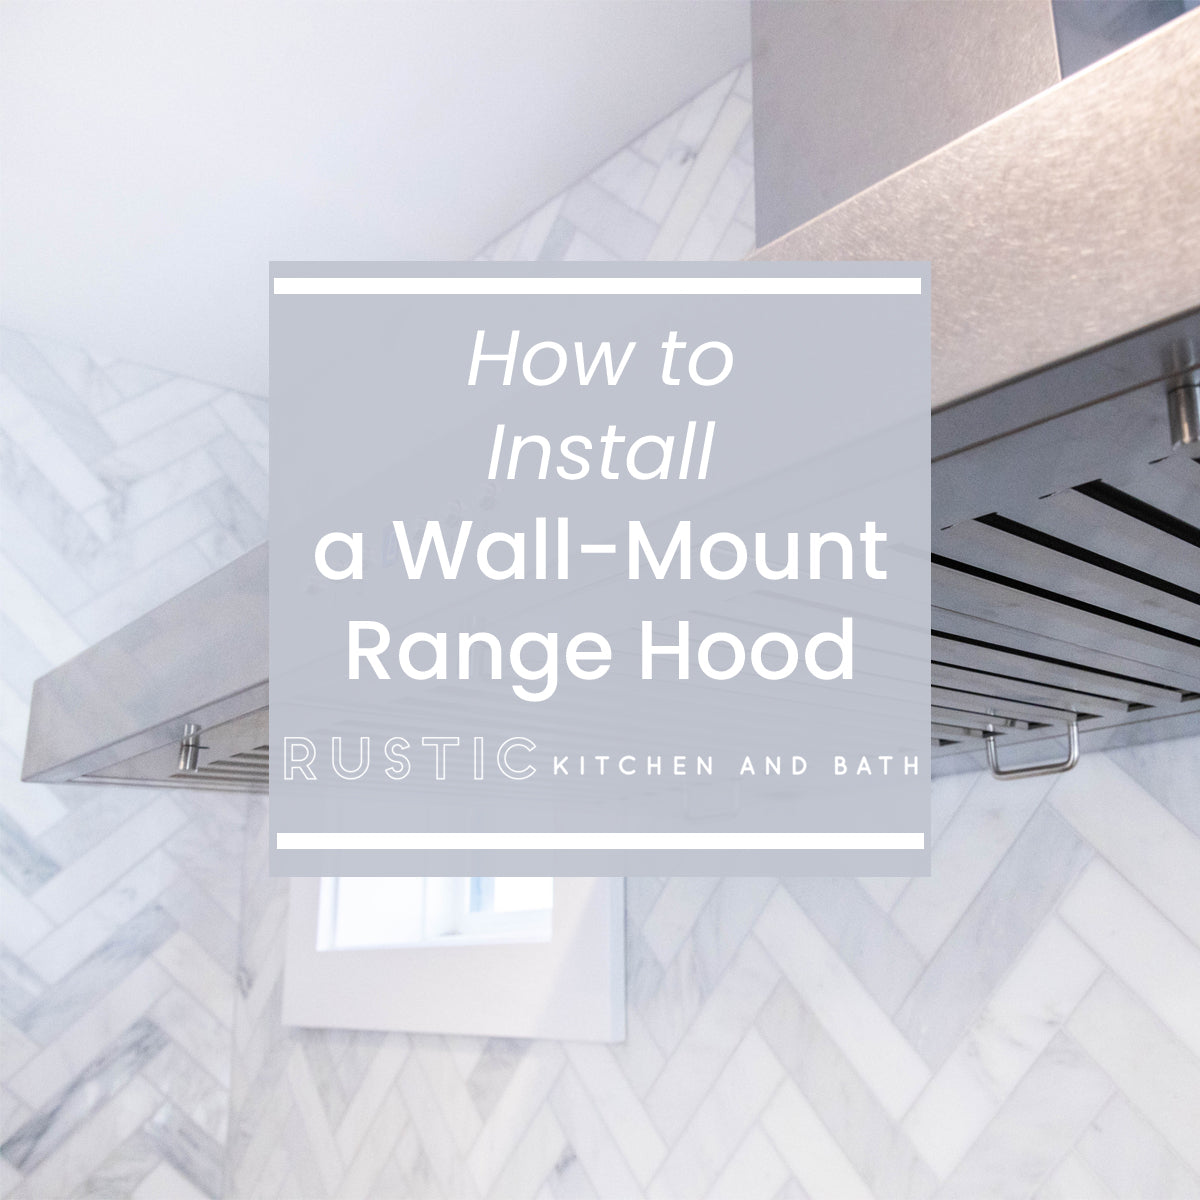 How to Install a Wall-Mount Range Hood Blog